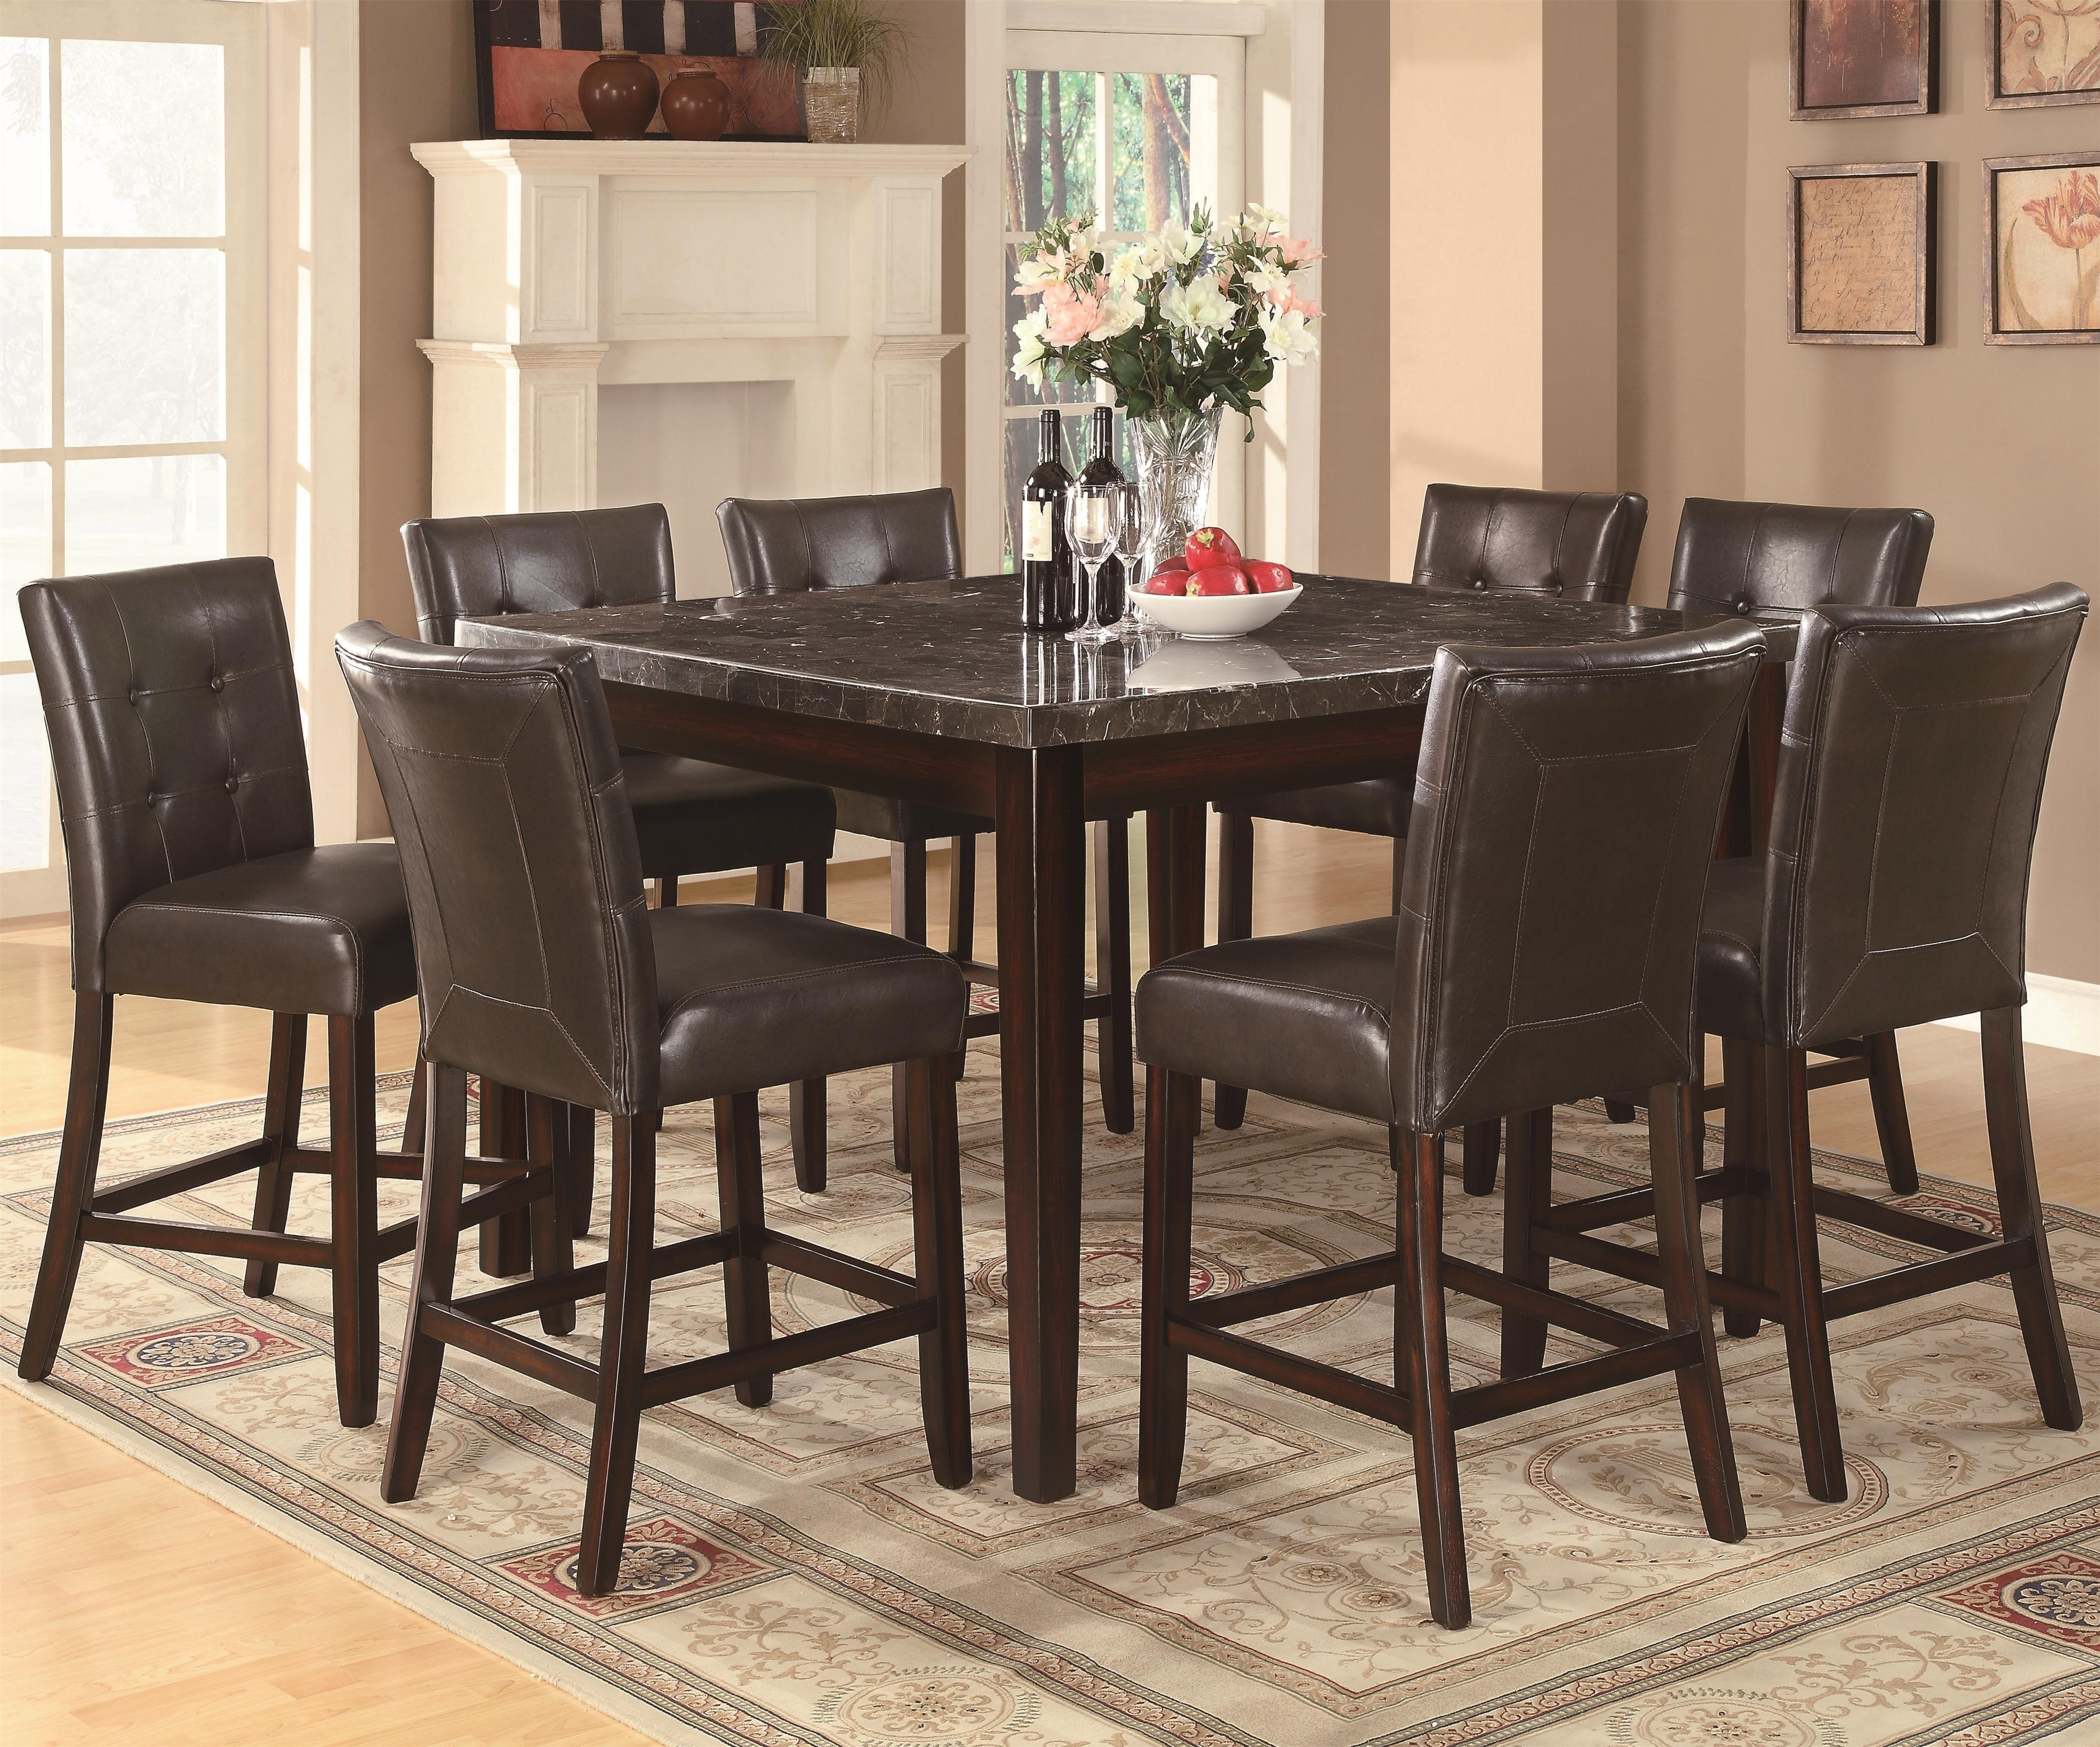 Counter Height Casual Dining – Co 103777 | Pertaining To 2018 Market 5 Piece Counter Sets (Image 10 of 20)